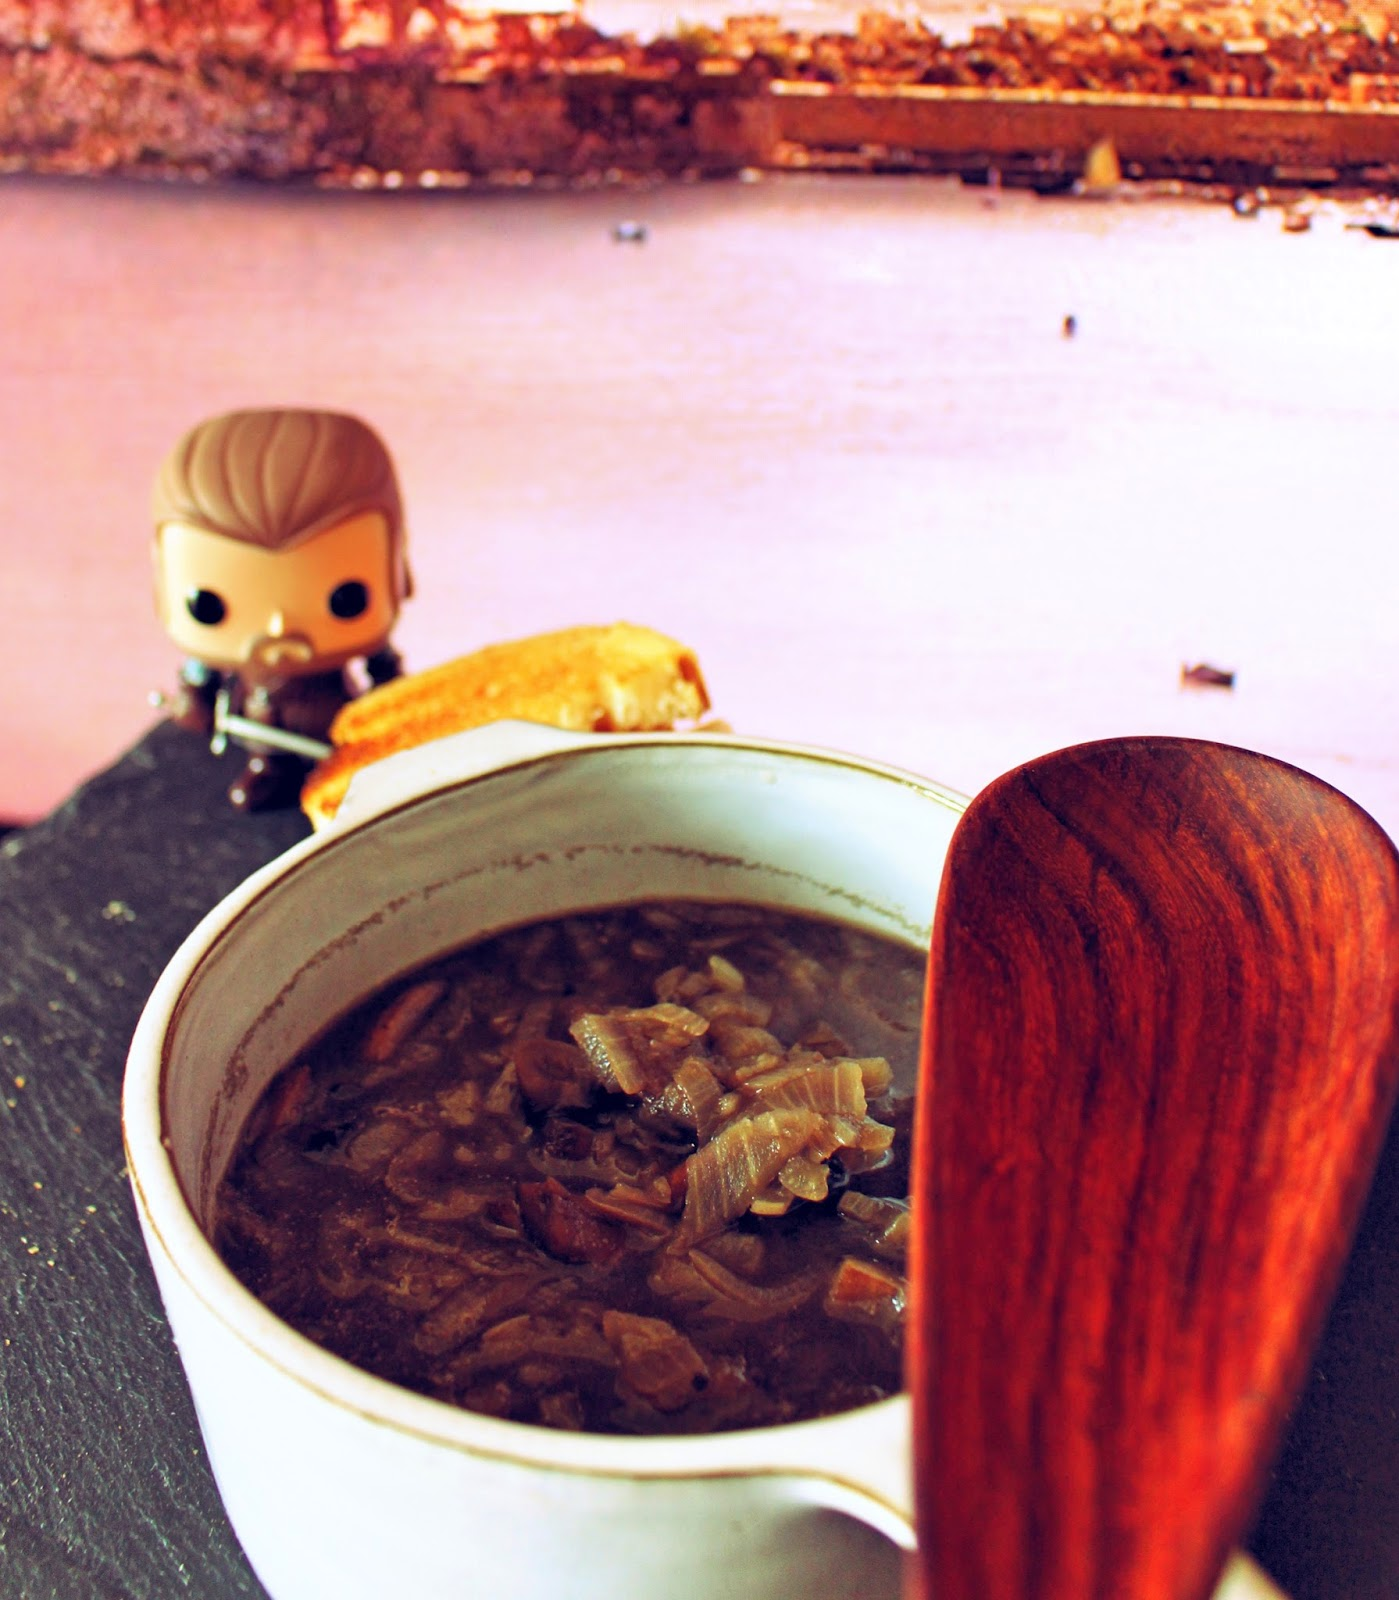 Game of Thrones Bowl of Brown